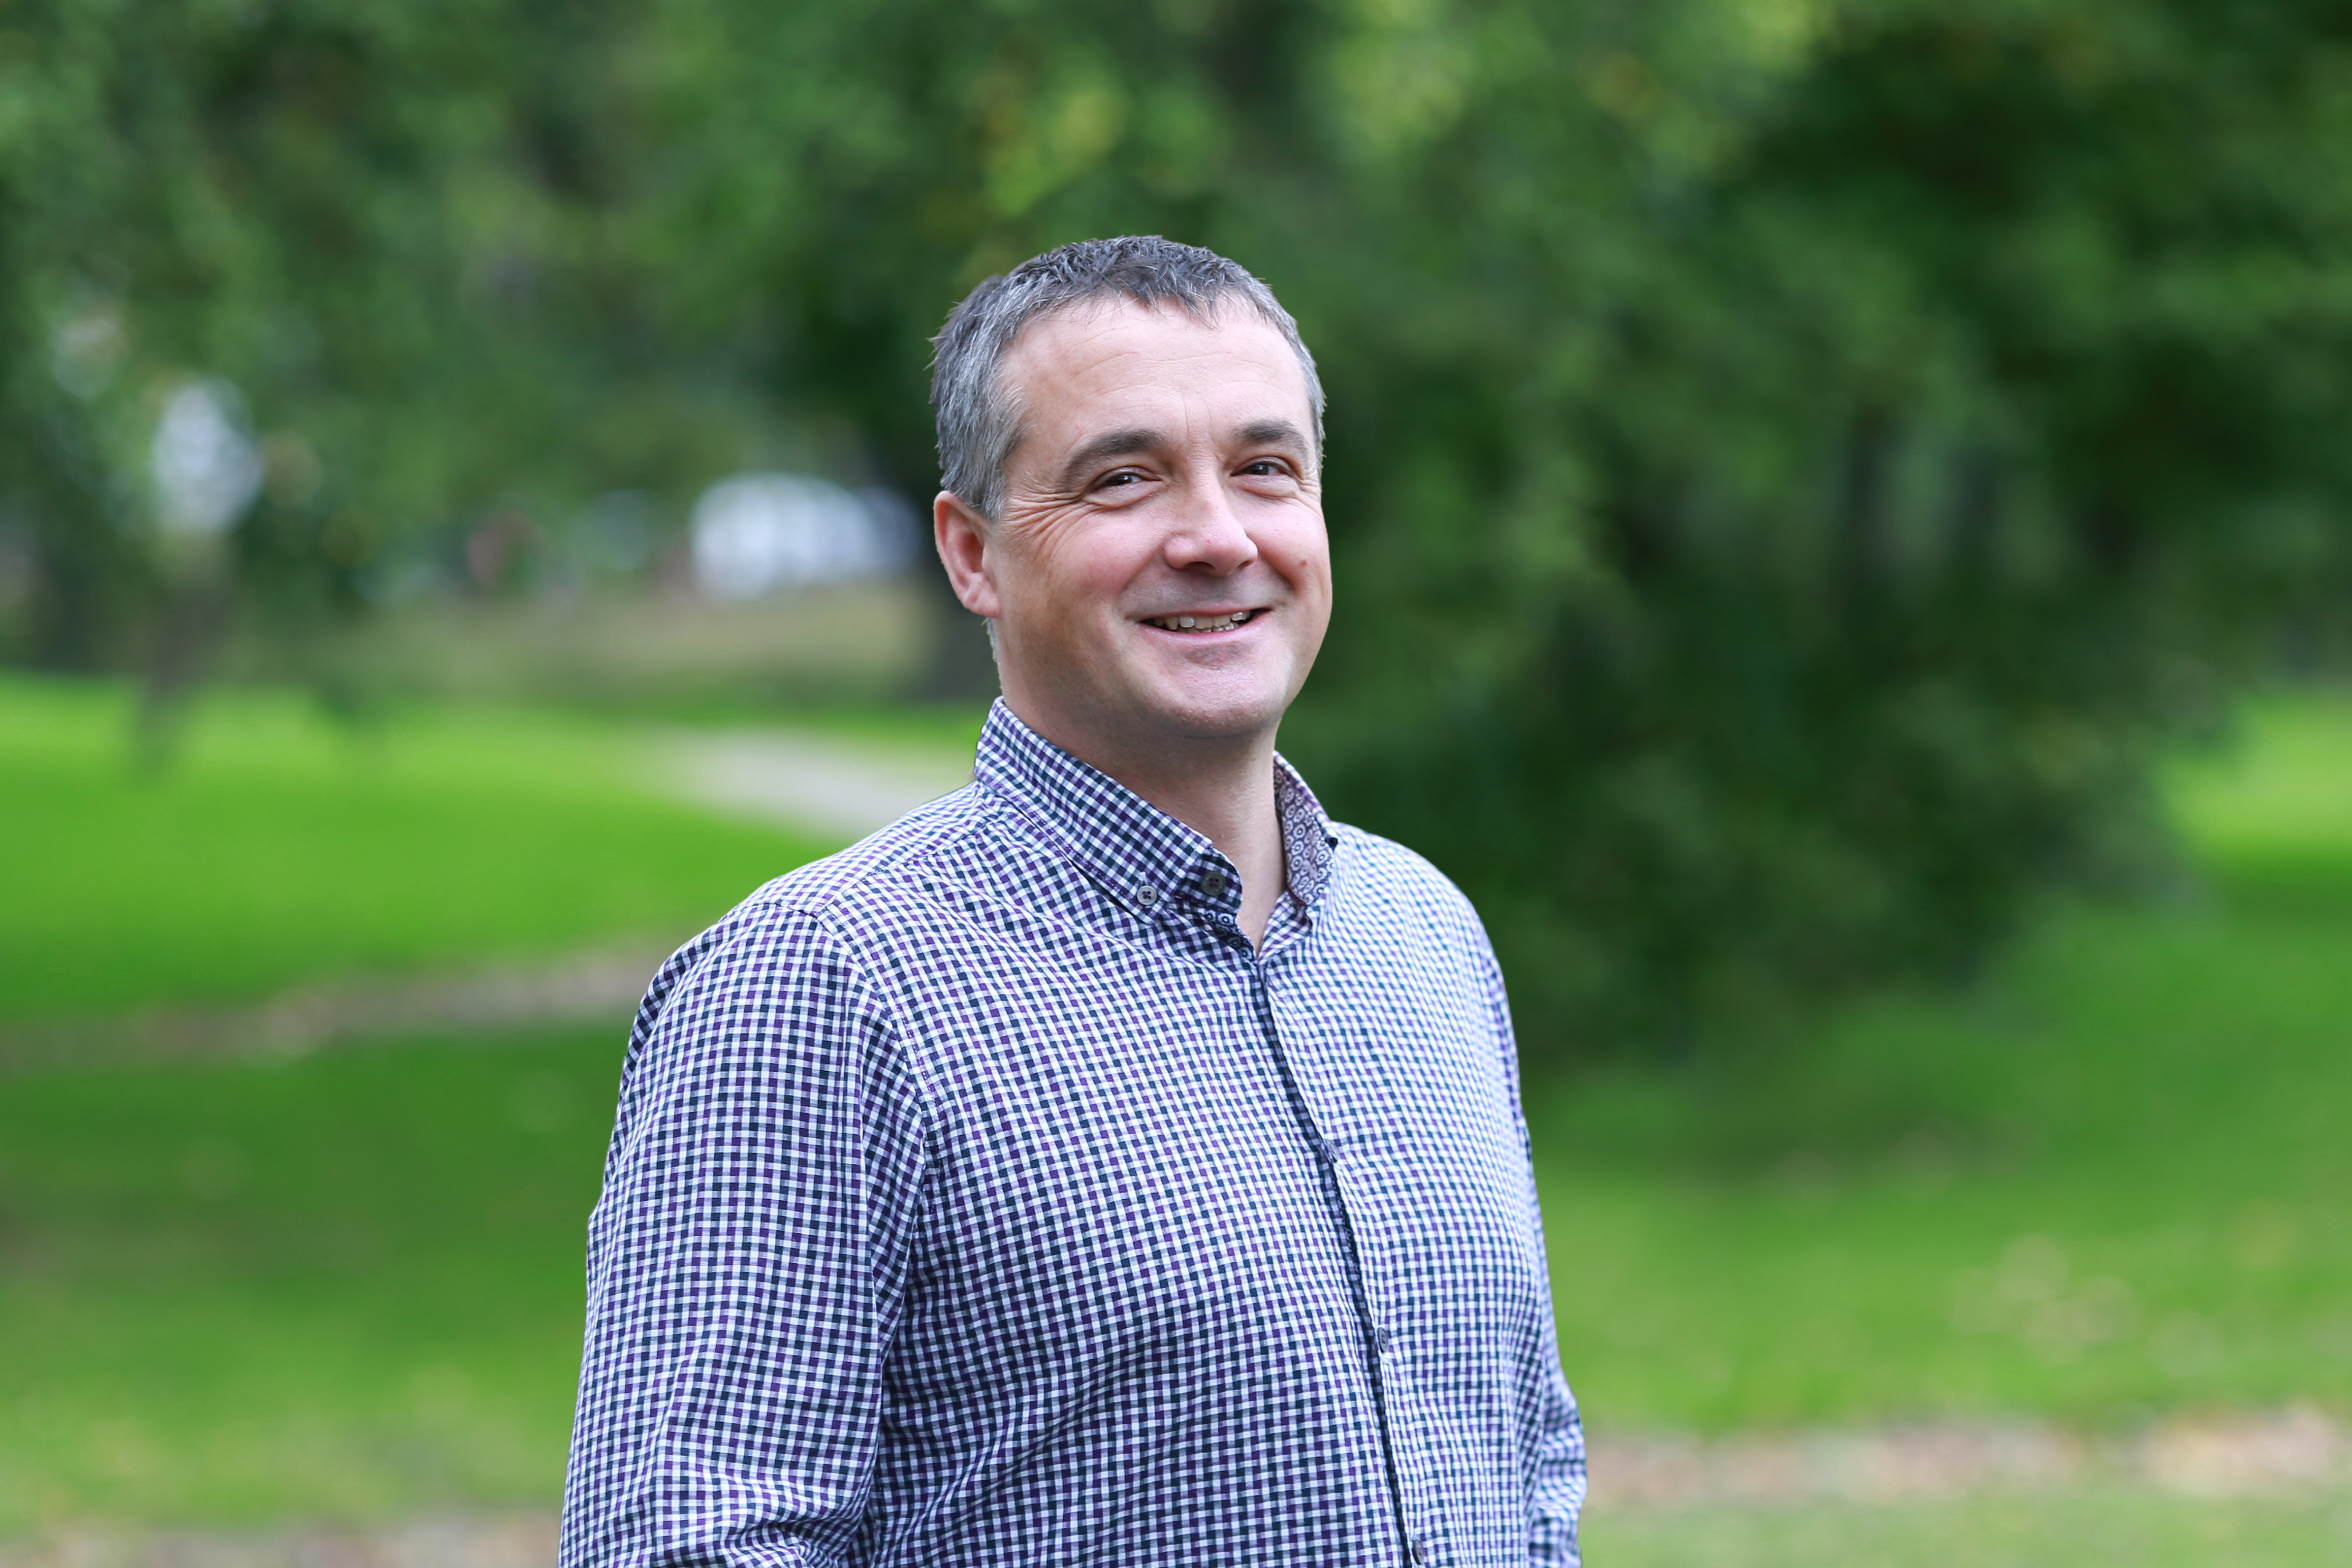 Mark Middleton, Ecologist, Ecological Consultant